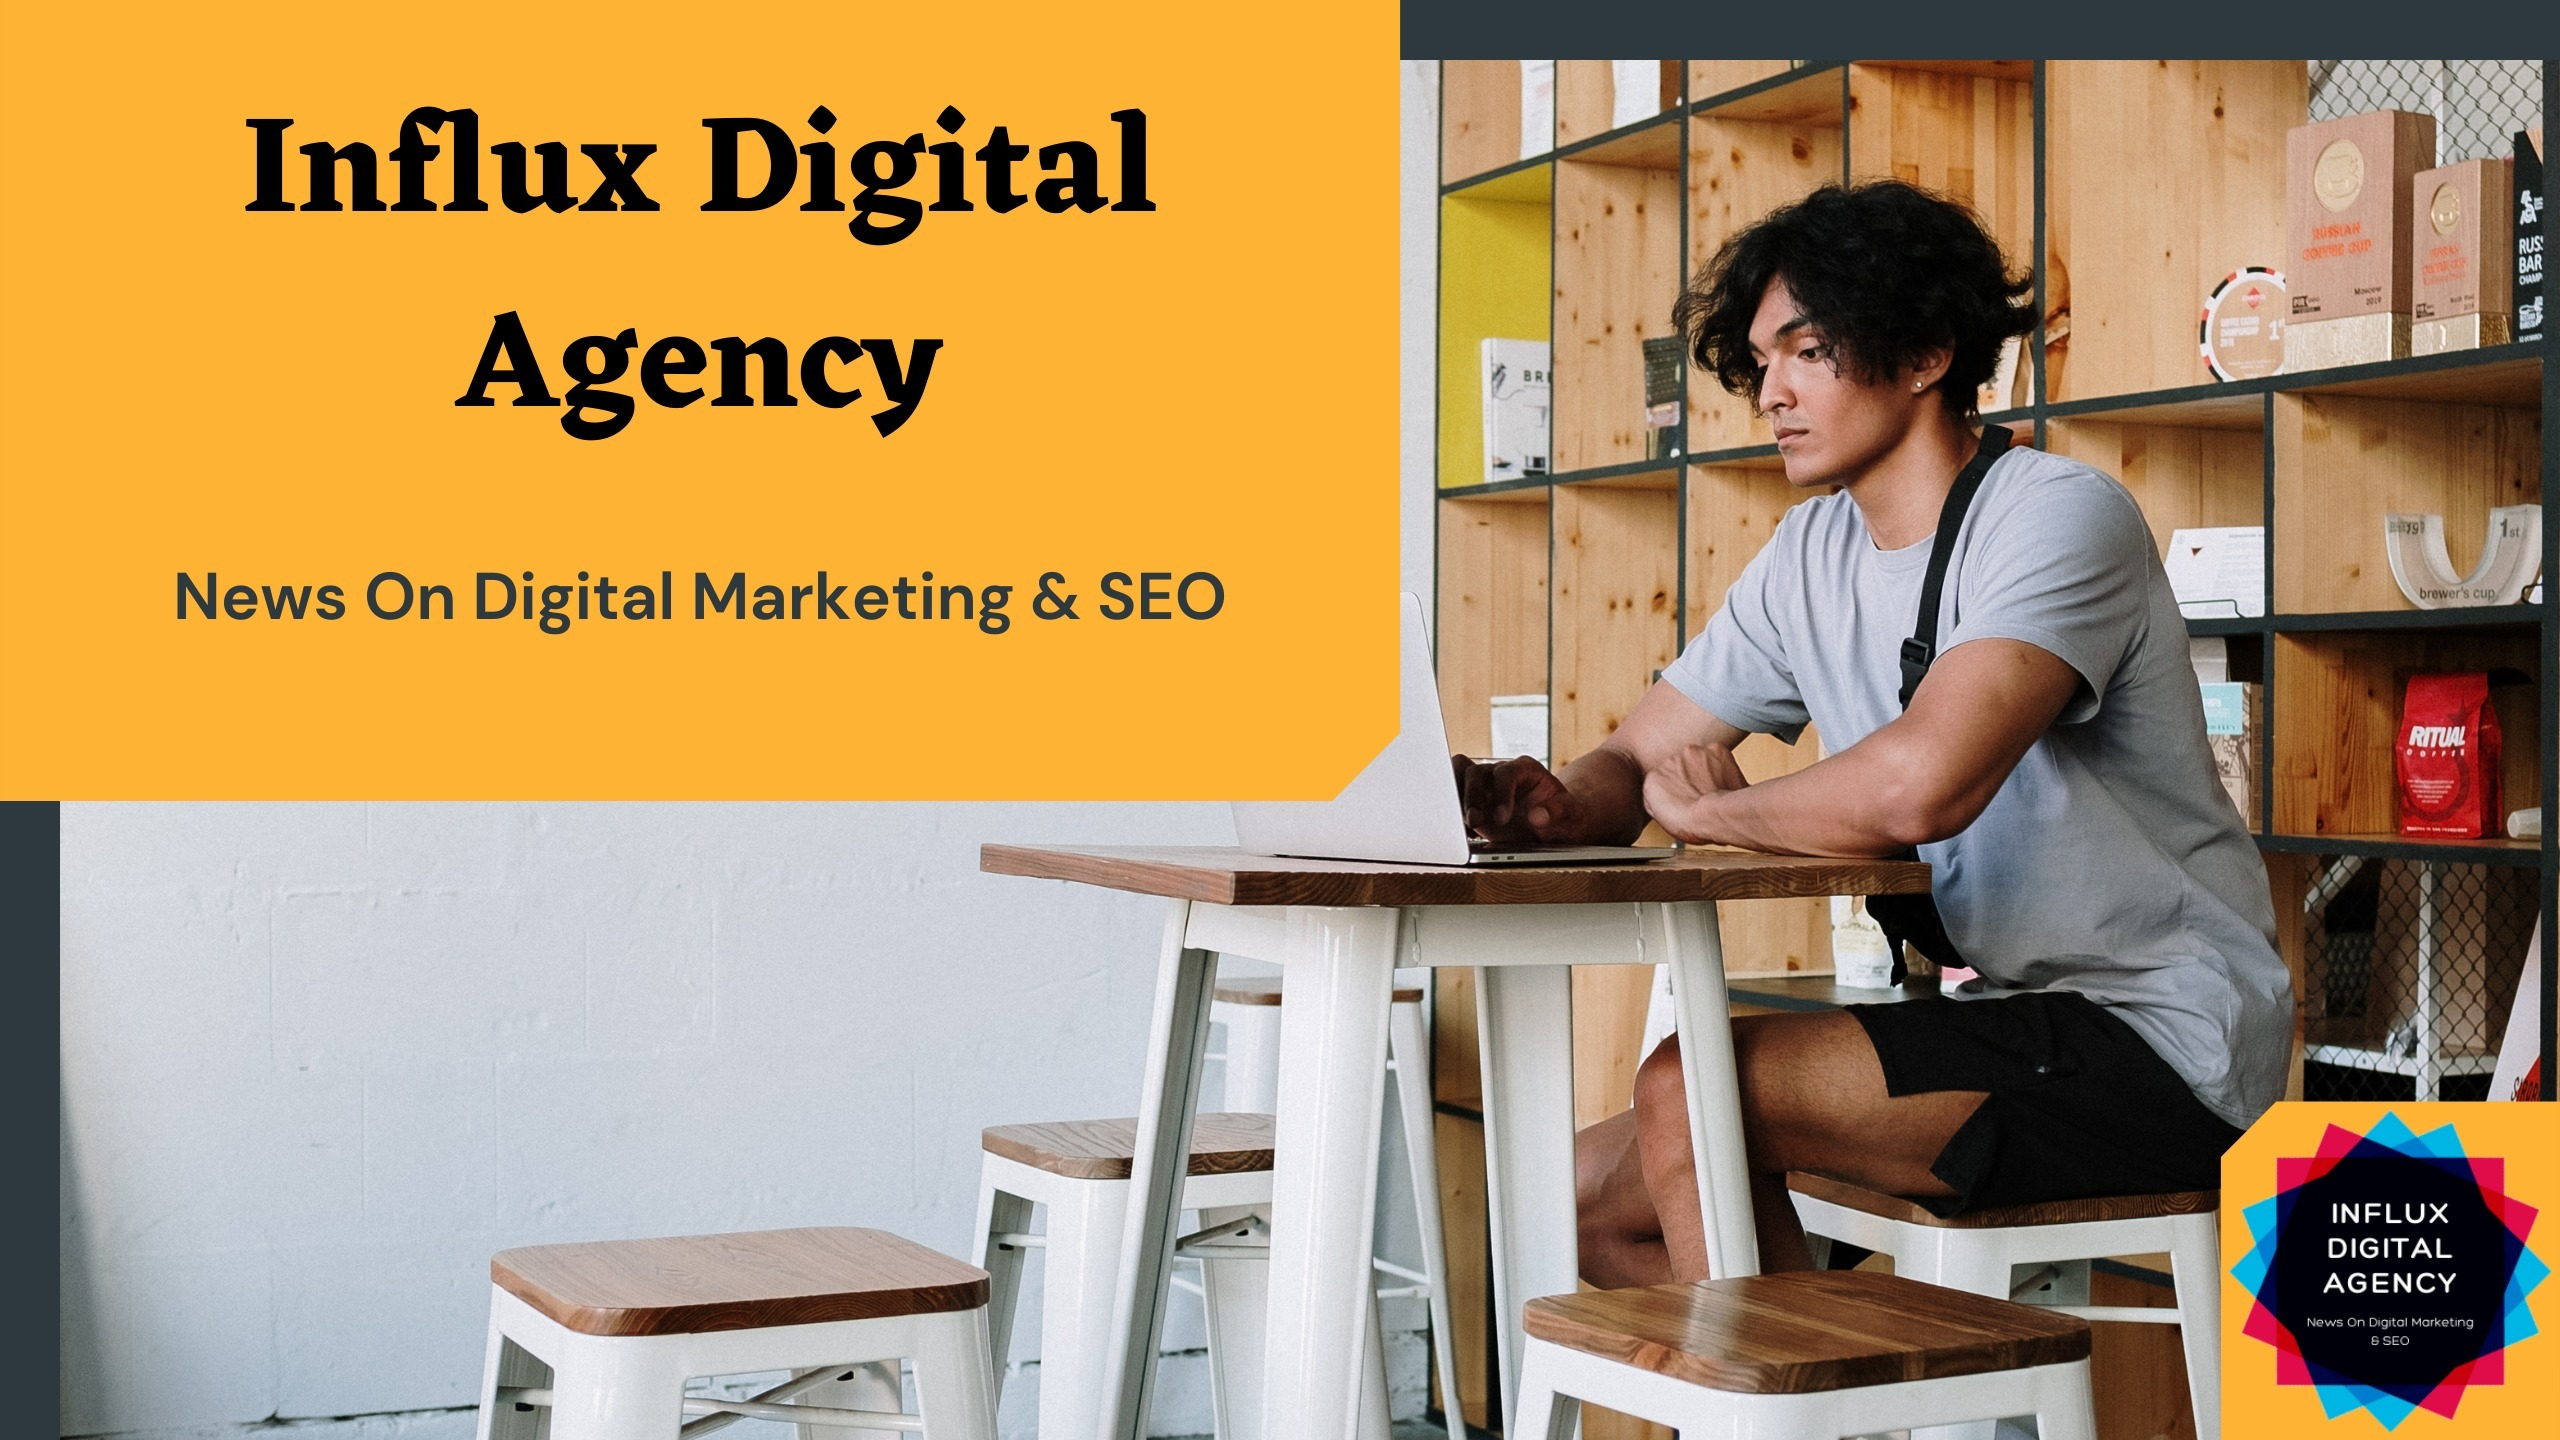 Influx Digital Agency (@influxdigitalagency) Cover Image